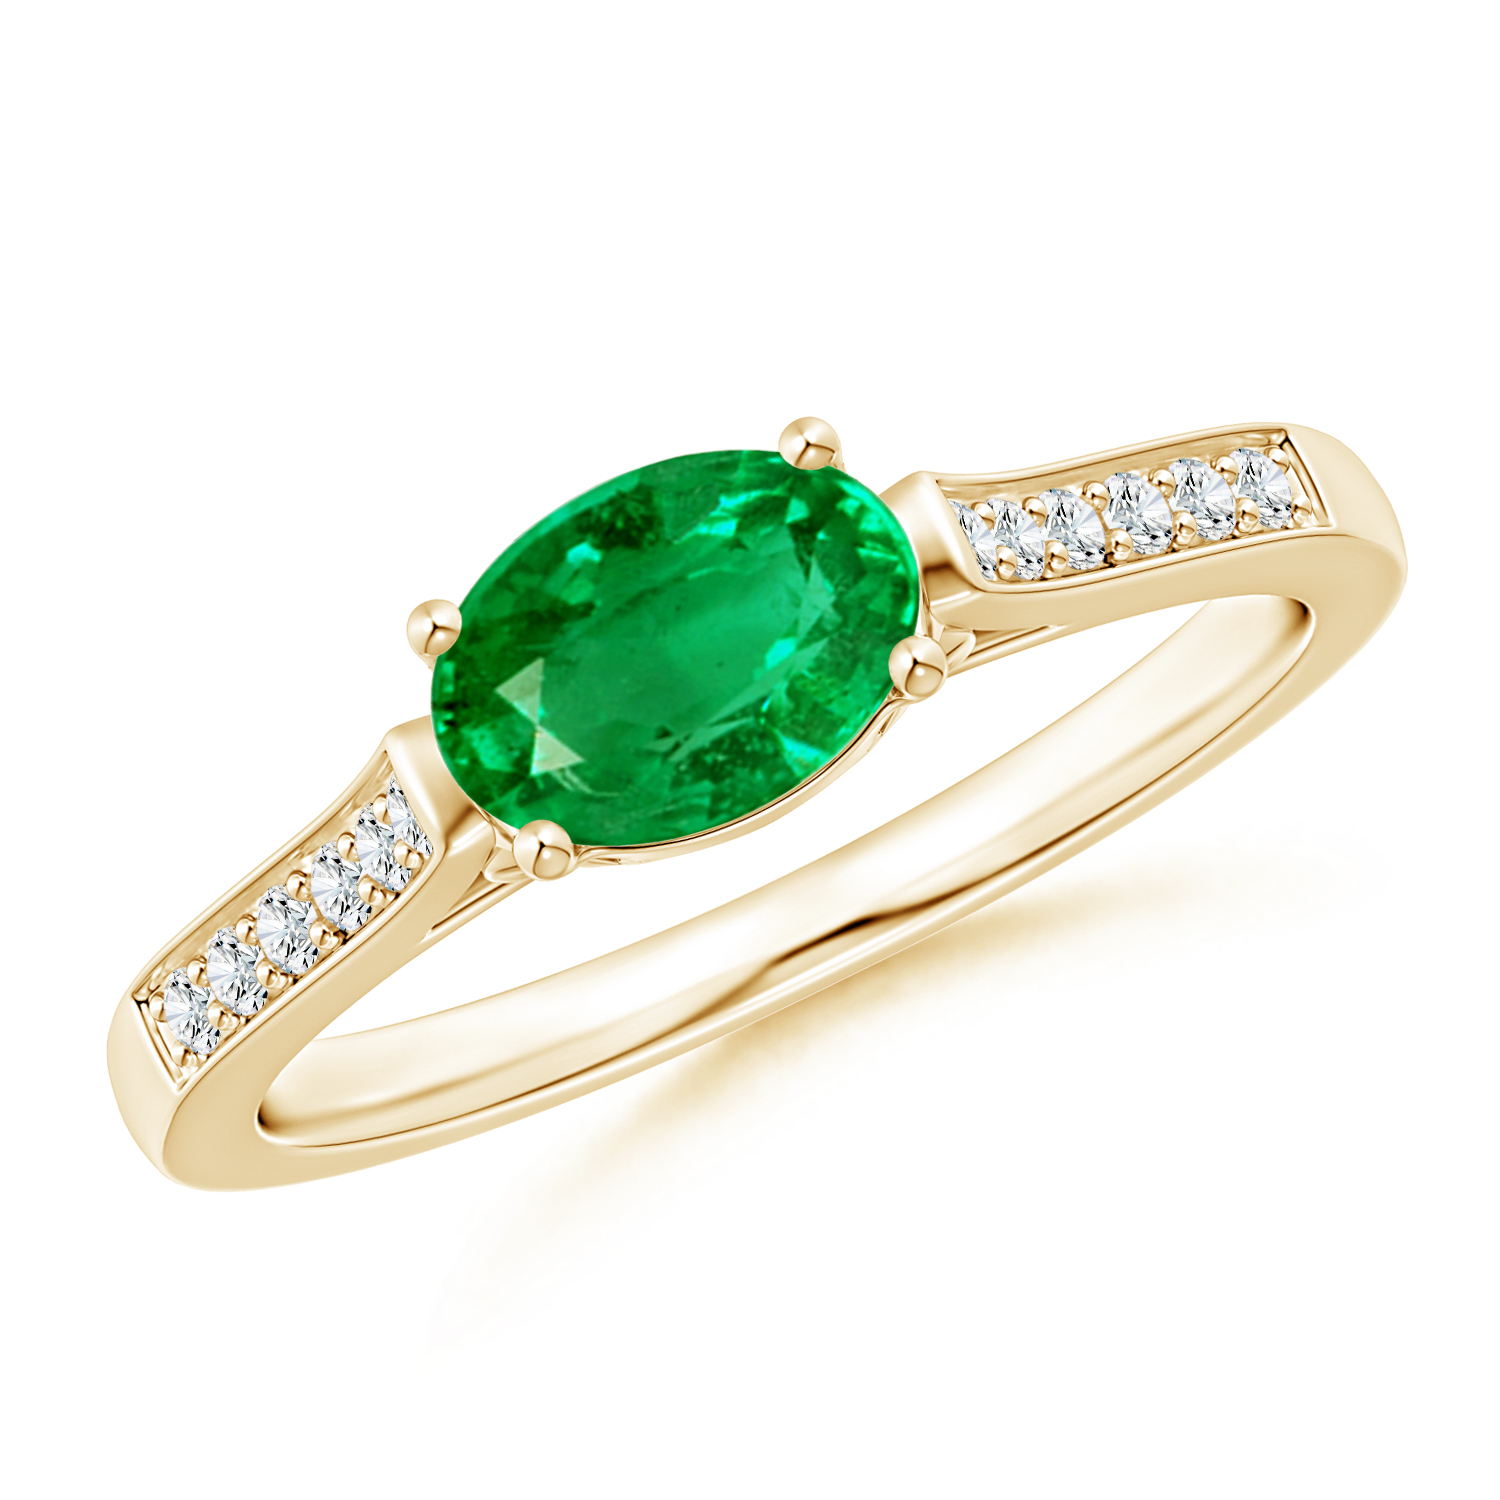 East West Set Oval Emerald Solitaire Ring with Diamond Accents - Angara.com